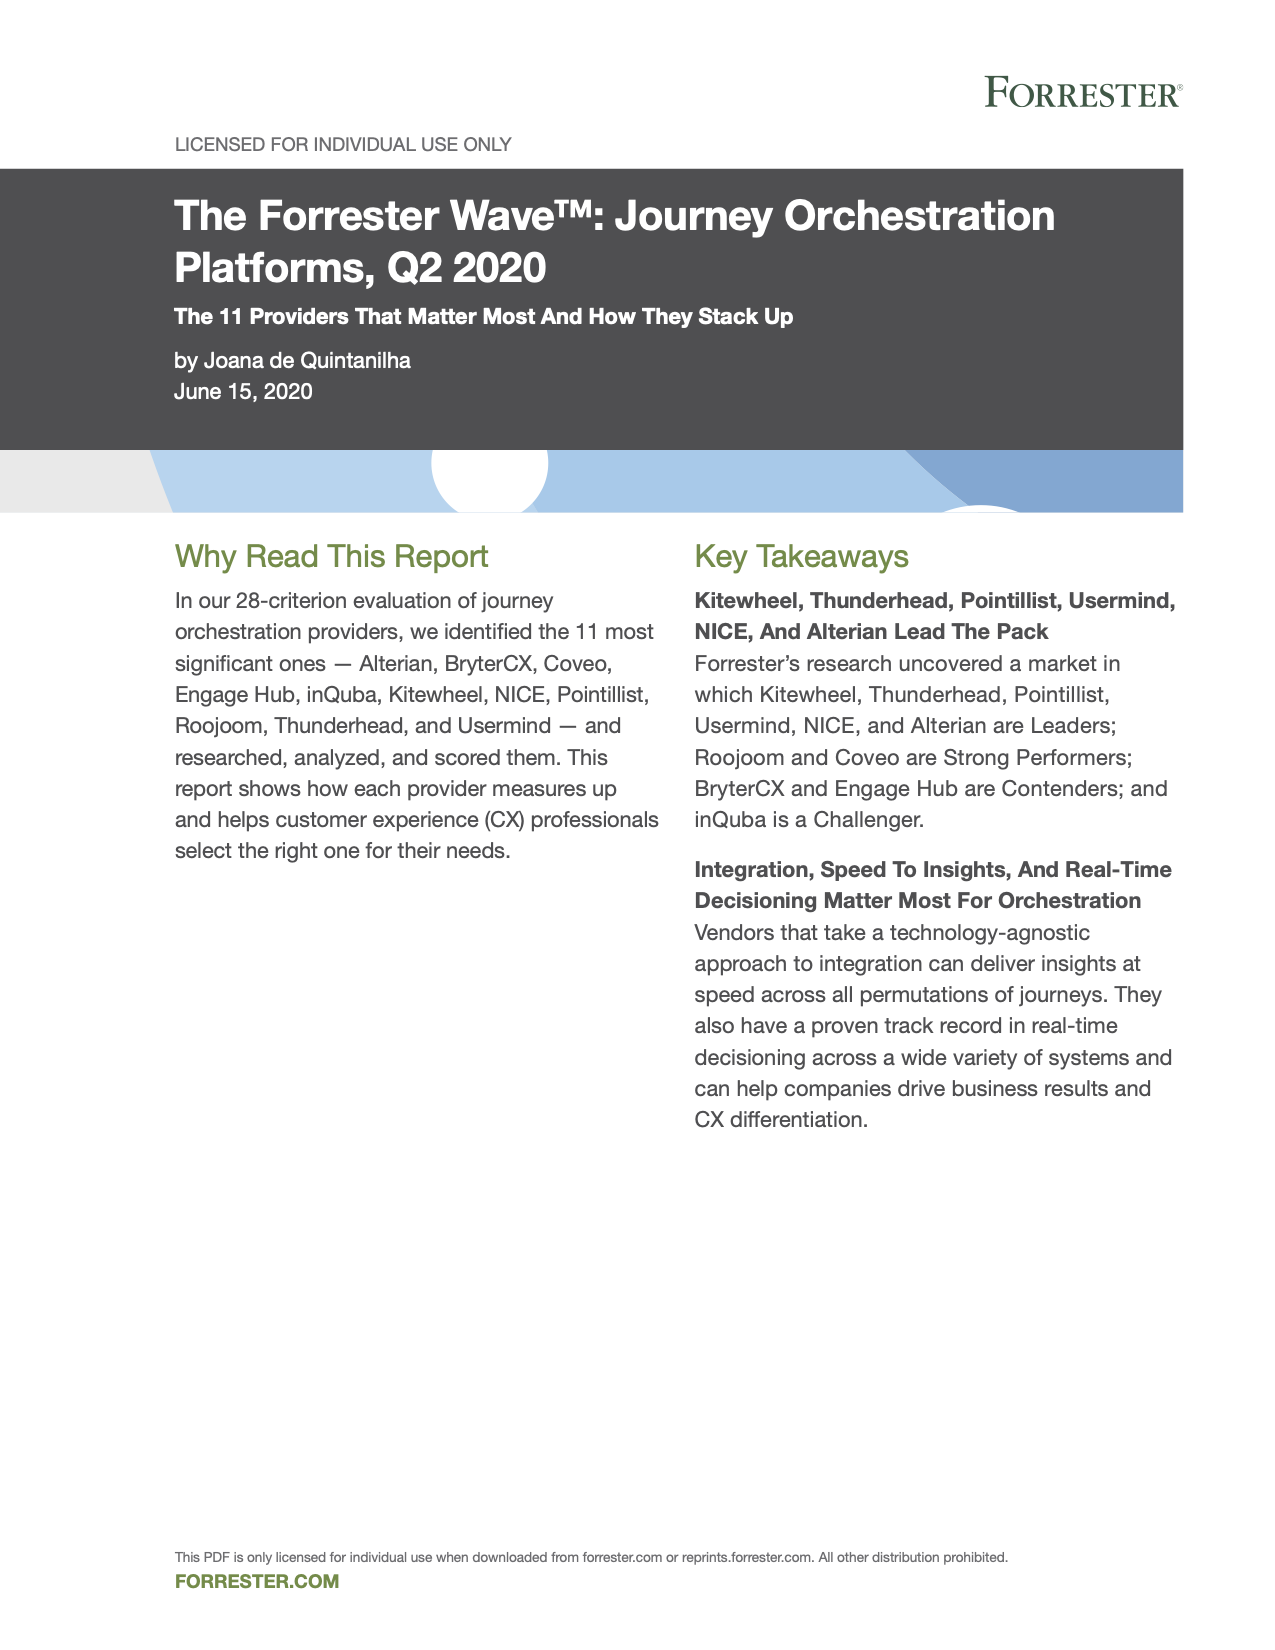 Usermind Named a Leader in The Forrester Wave™: Journey Orchestration Platforms, Q2 2020